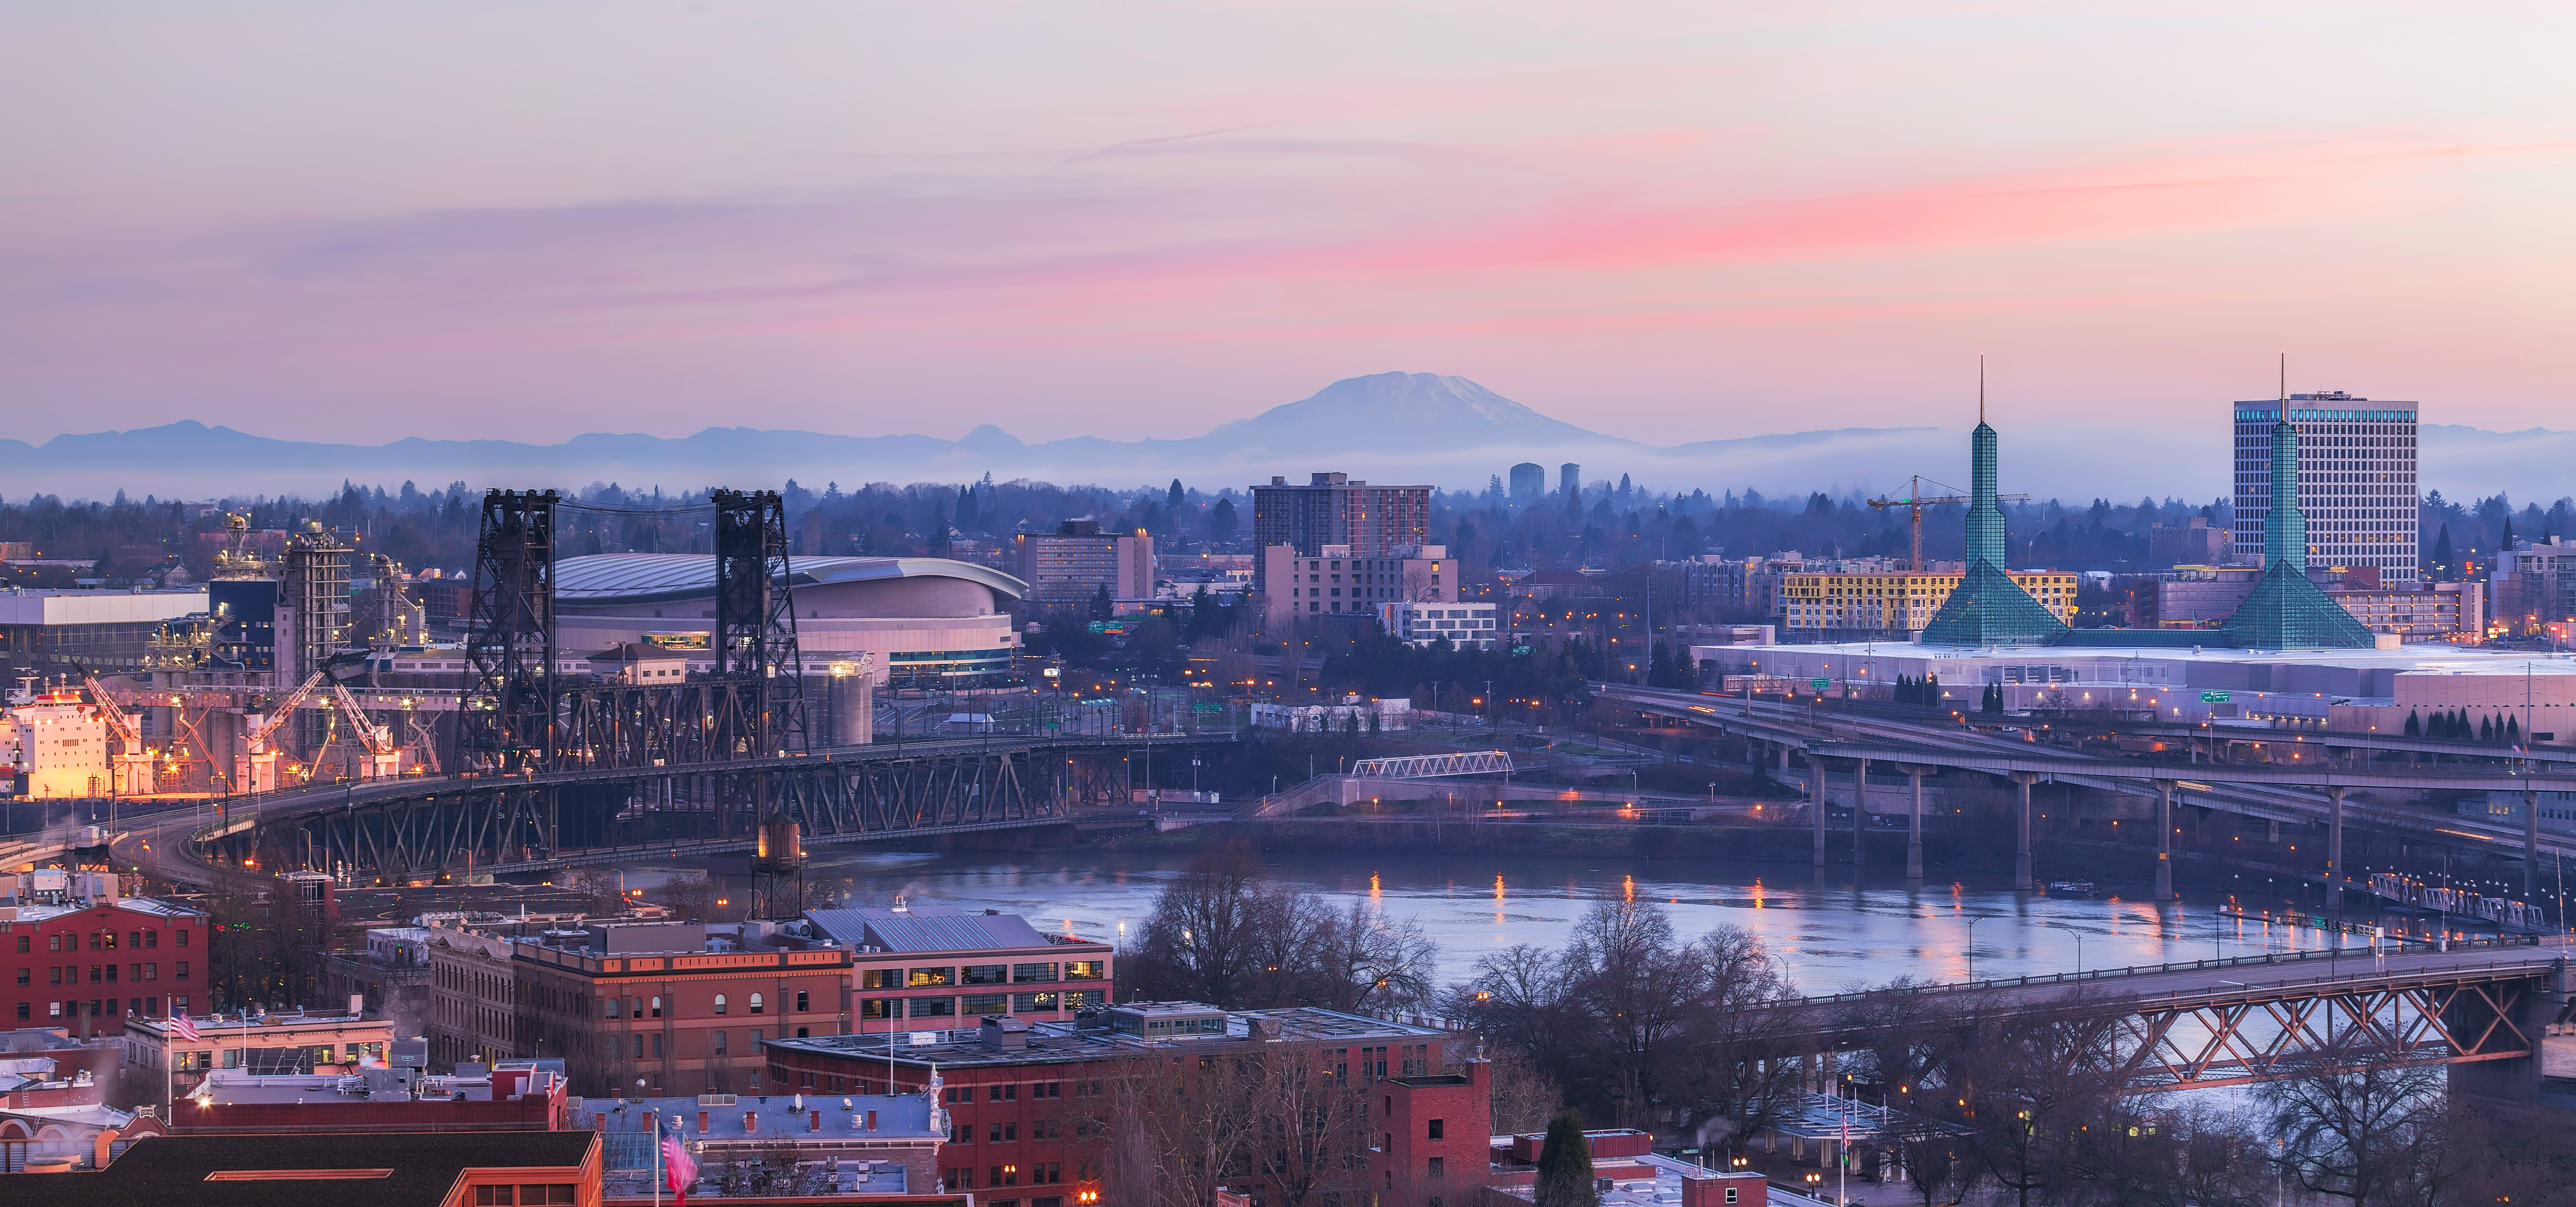 A picture of Portland taken from the West Side, looking onto the Willamette and East Portland